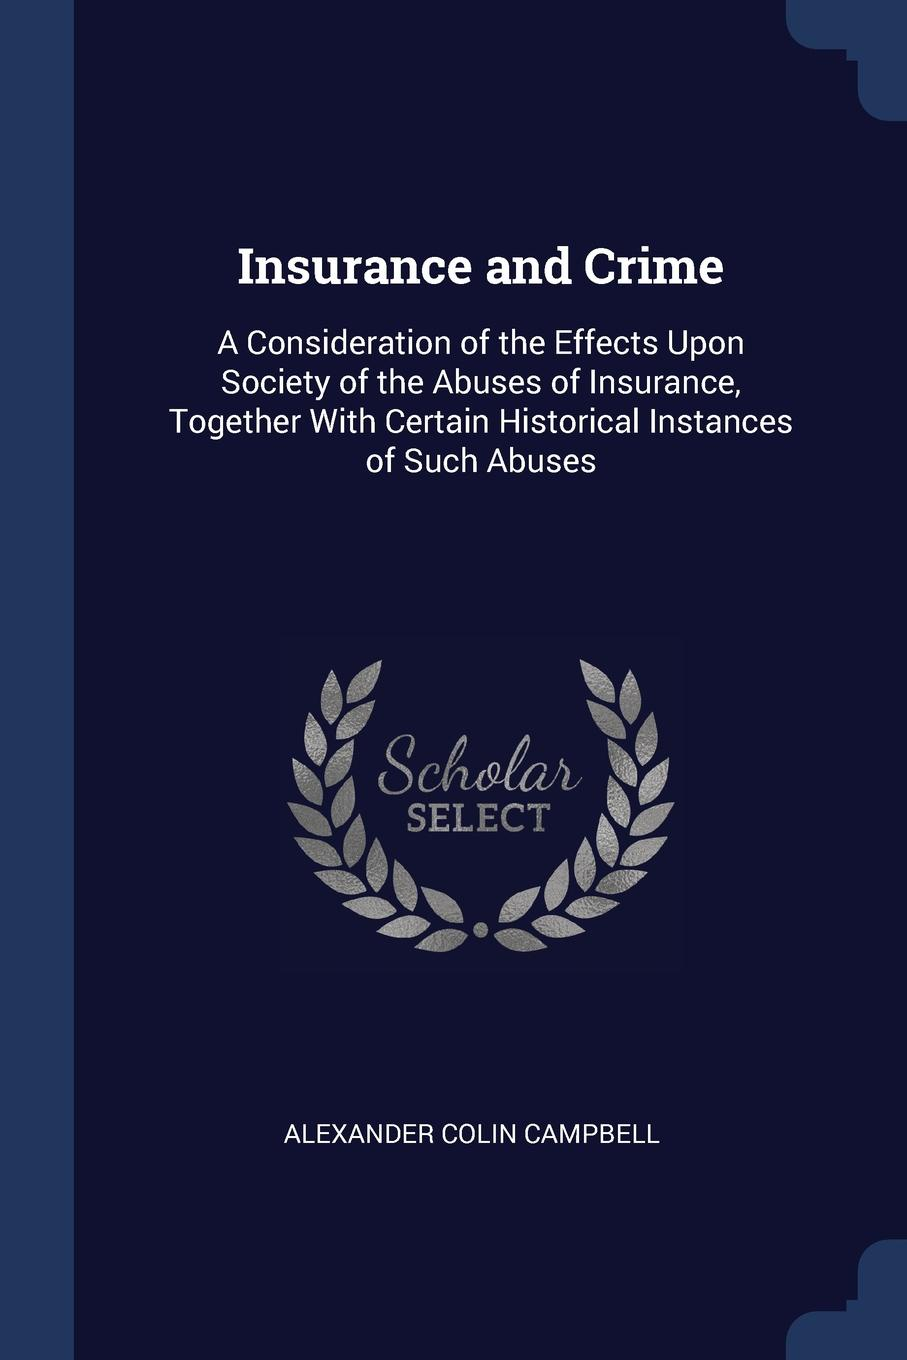 Alexander Colin Campbell Insurance and Crime. A Consideration of the Effects Upon Society Abuses Insurance, Together With Certain Historical Instances Such